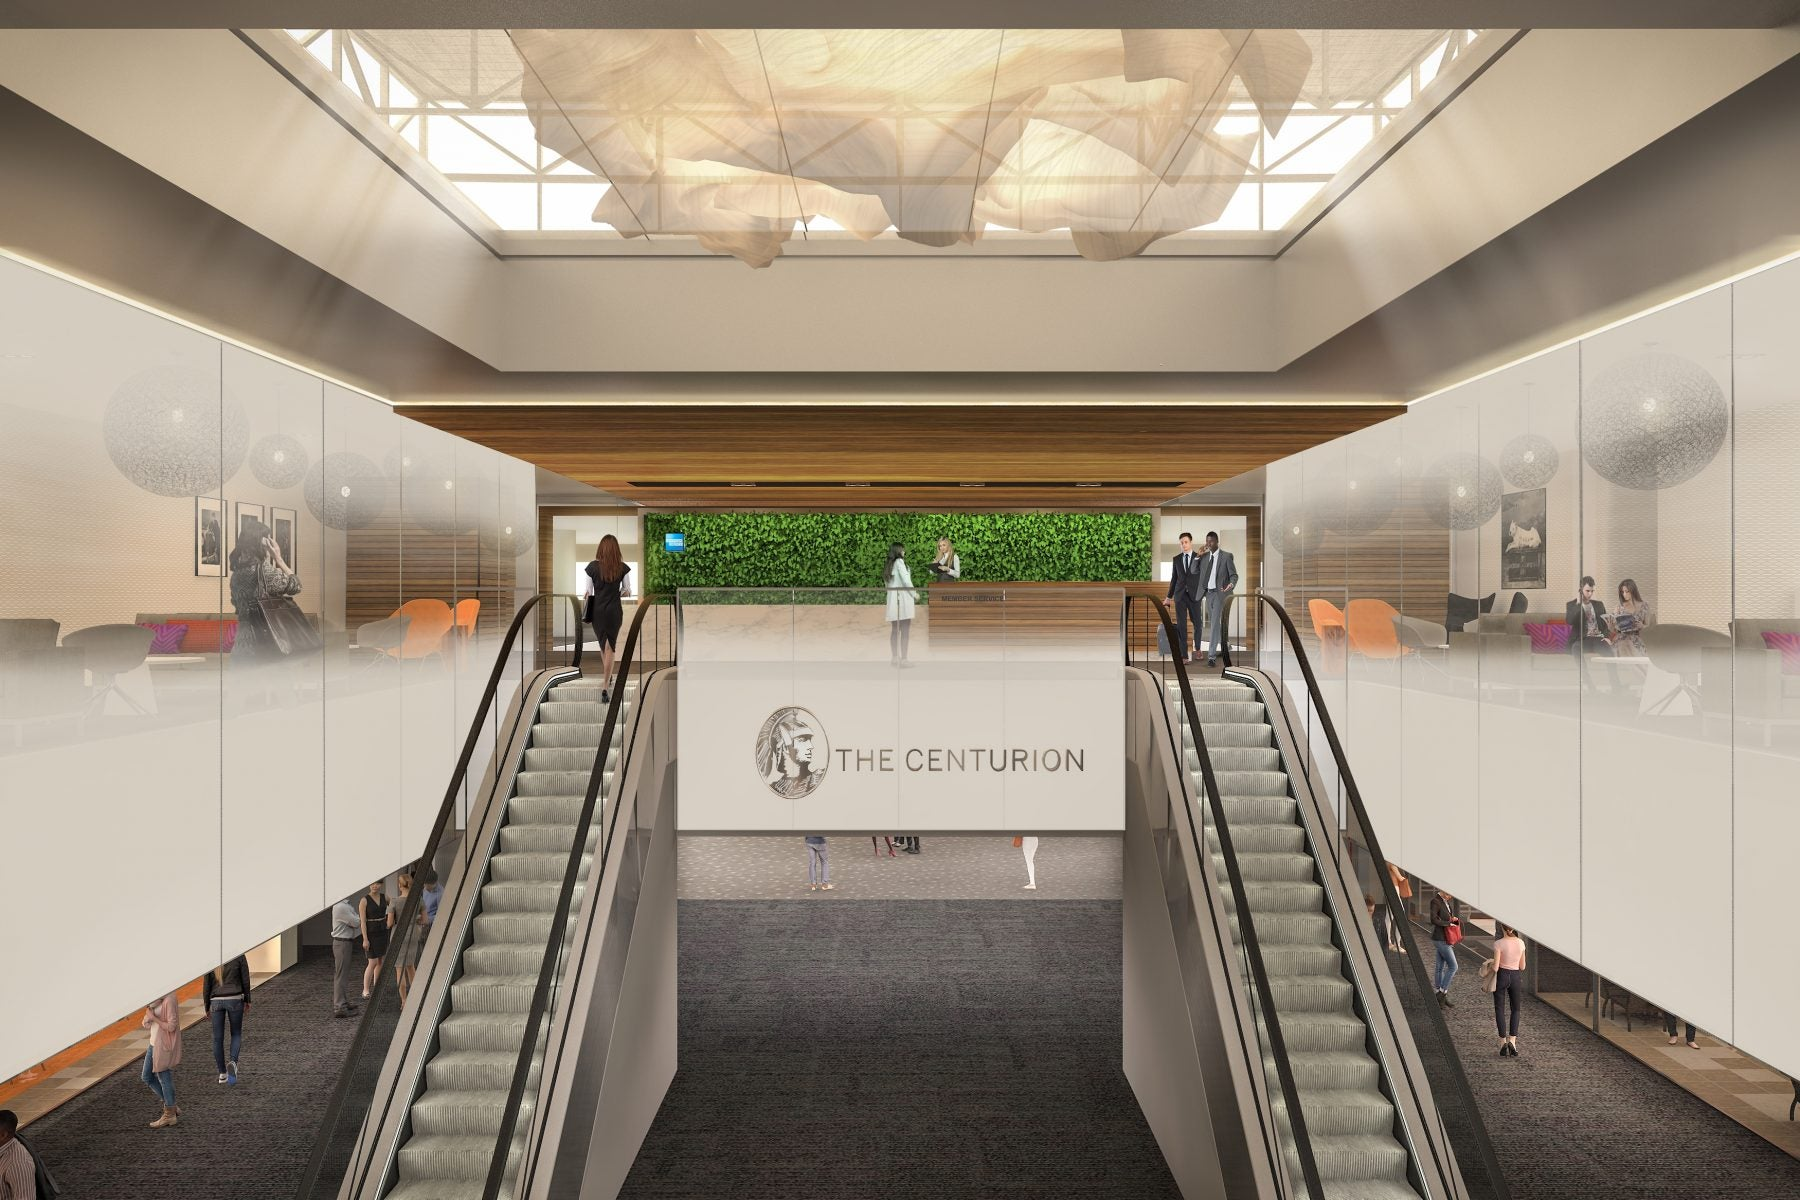 A Rendering of the Upcoming Denver Centurion Lounge. American Express Centurion Lounges are our Favorite Lounges to Relax at While Waiting for an Upcoming Flight.